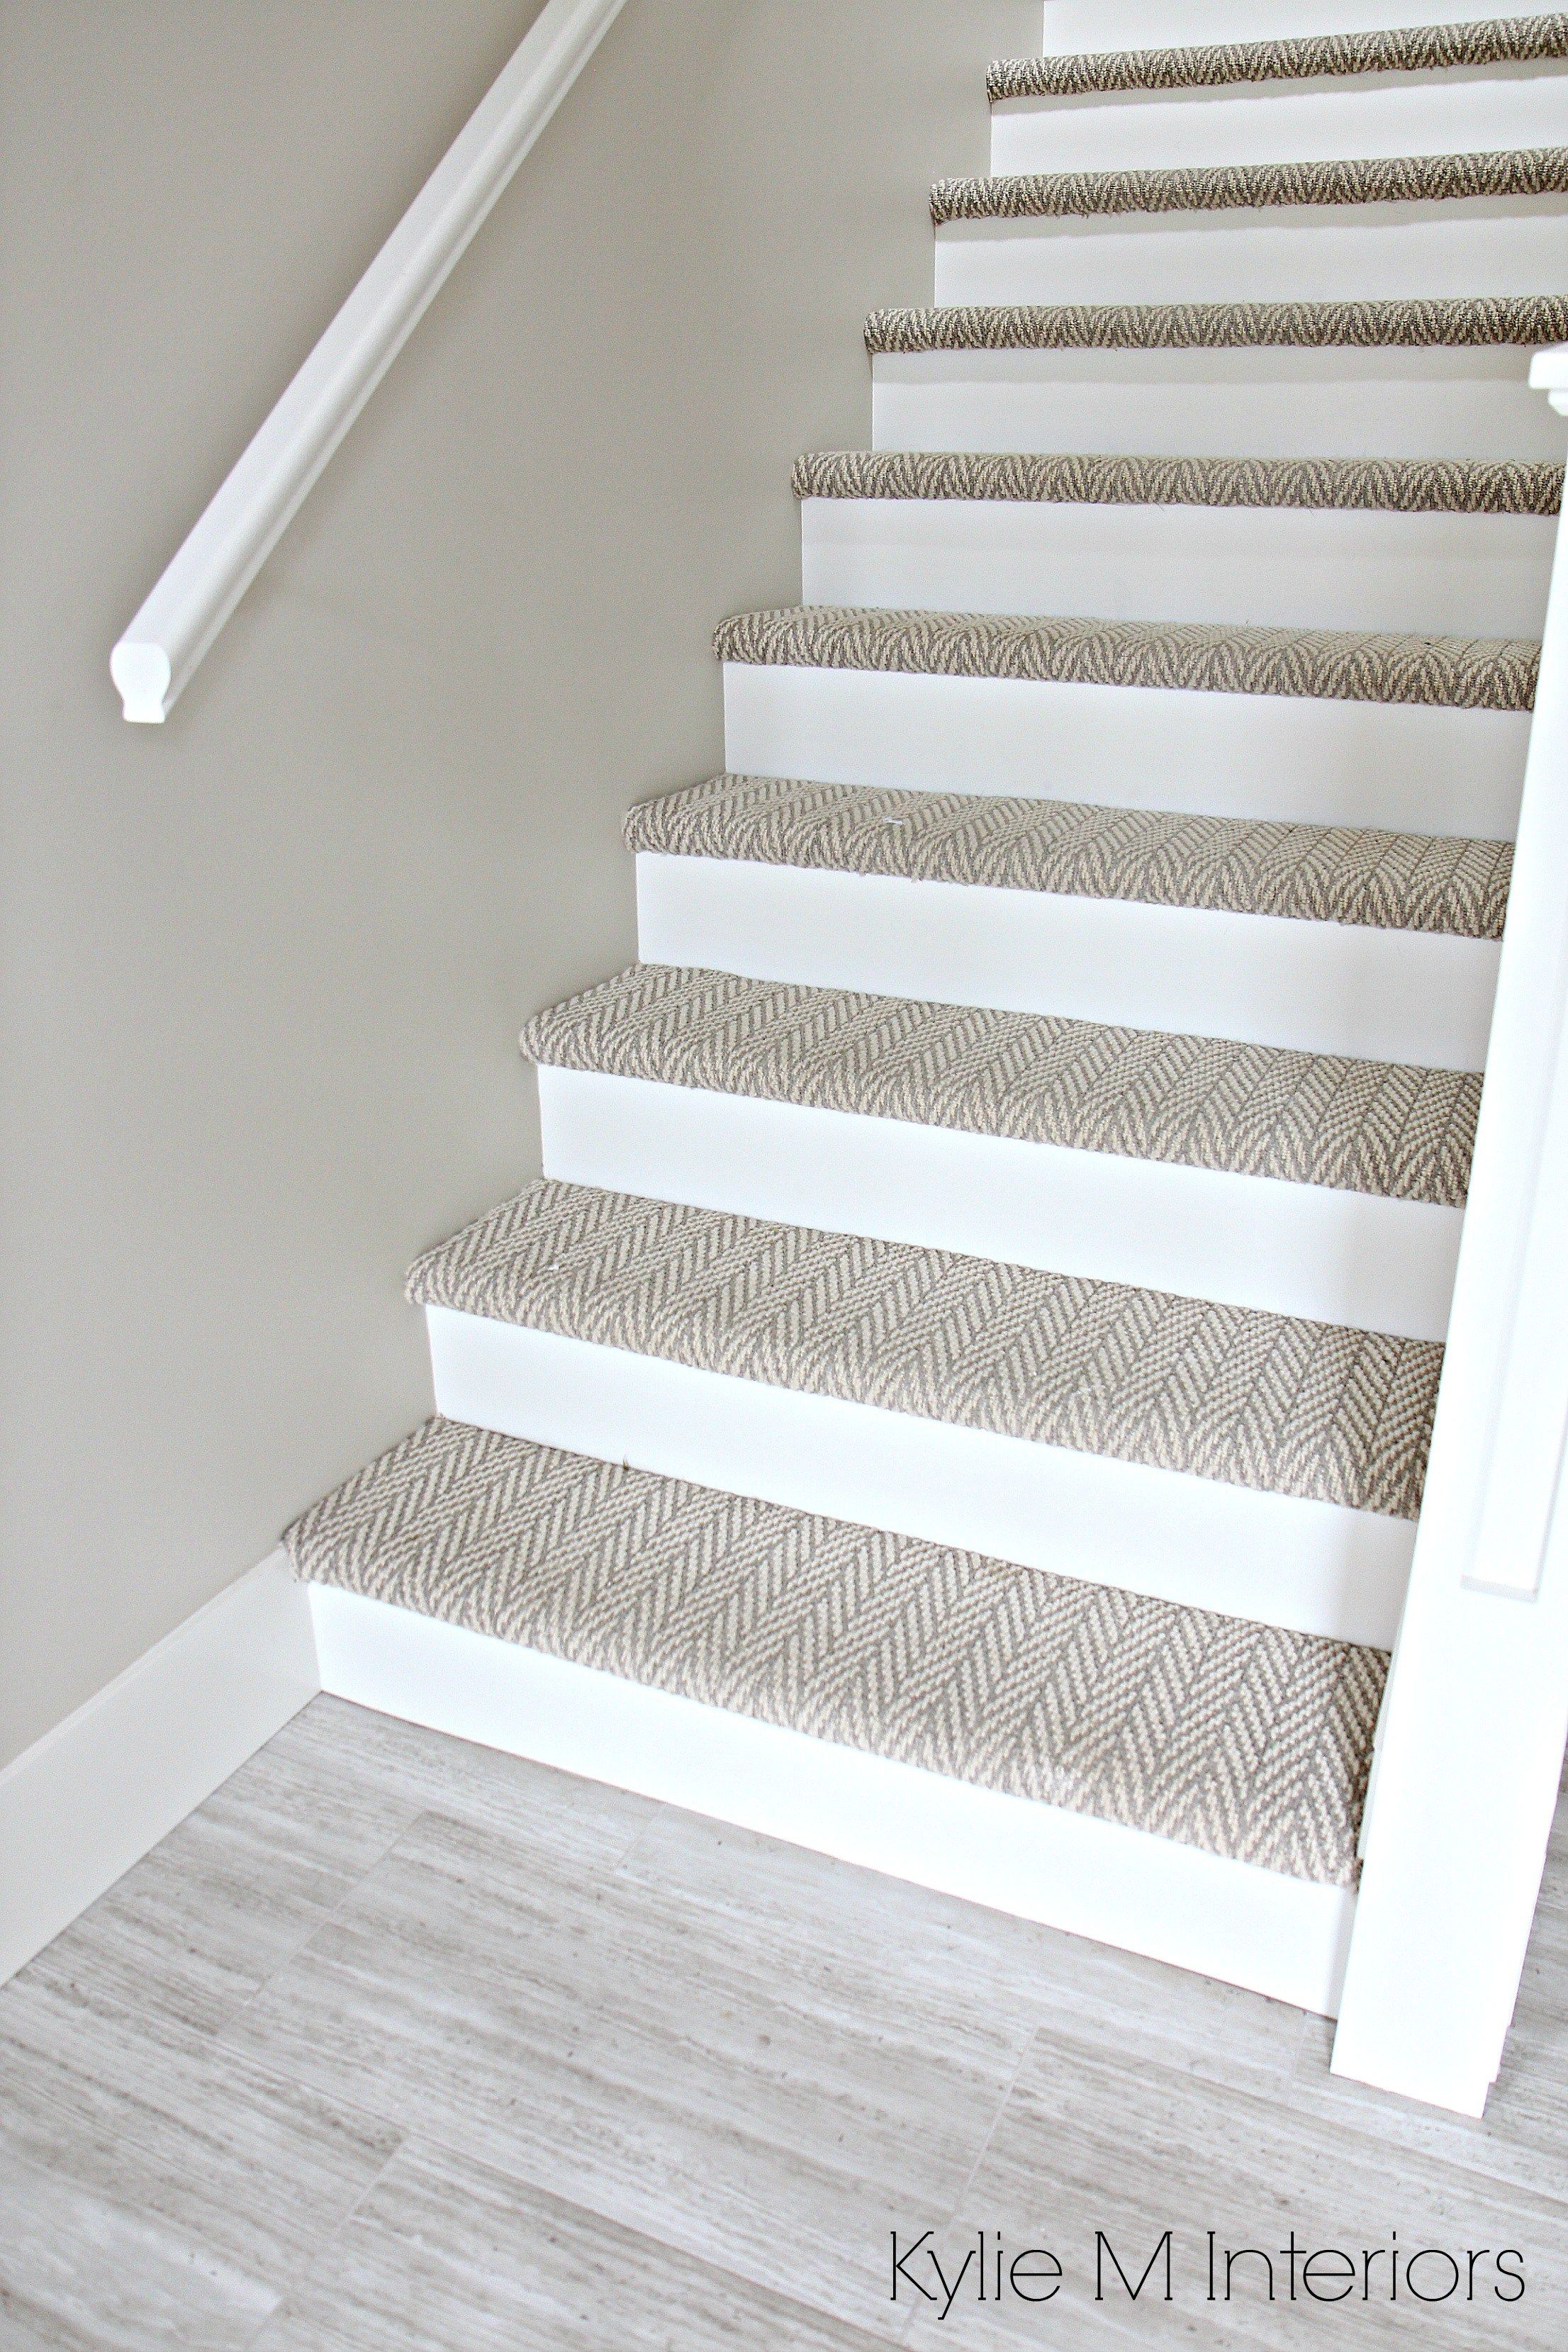 Stairs With Carpet Herringbone Treads And Painted White Risers, Looks Like  A Runner. Benjamin Moore Edgecomb Gray On Stairwell Wall.